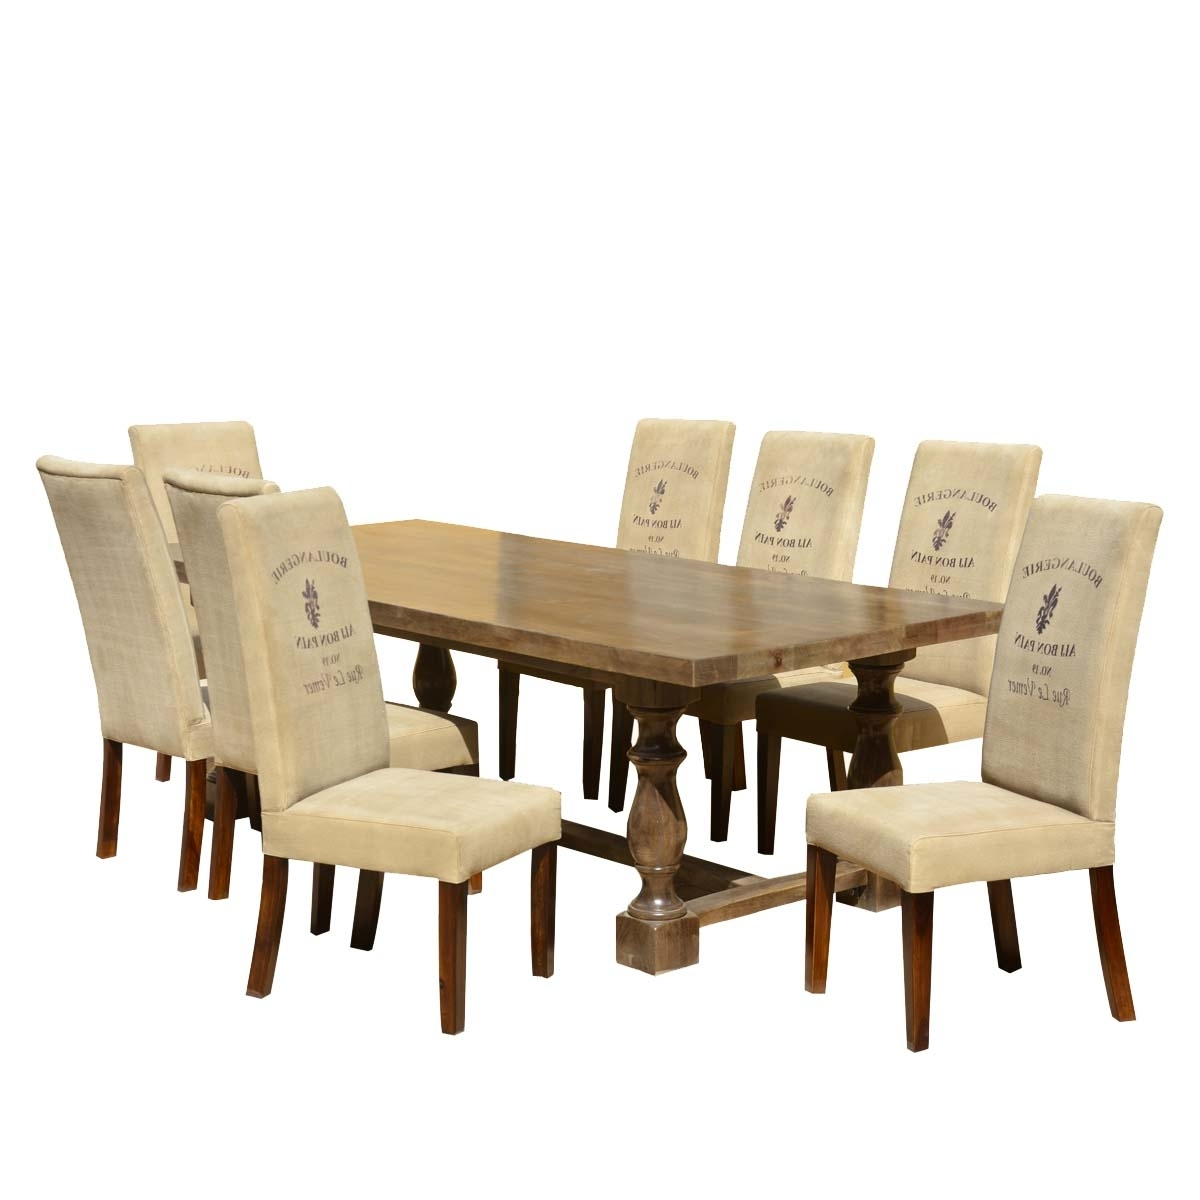 Favorite Dining Tables And Fabric Chairs Intended For Cafe Logo Mango Dining Table Set With Fabric Upholstered Chairs (View 10 of 25)